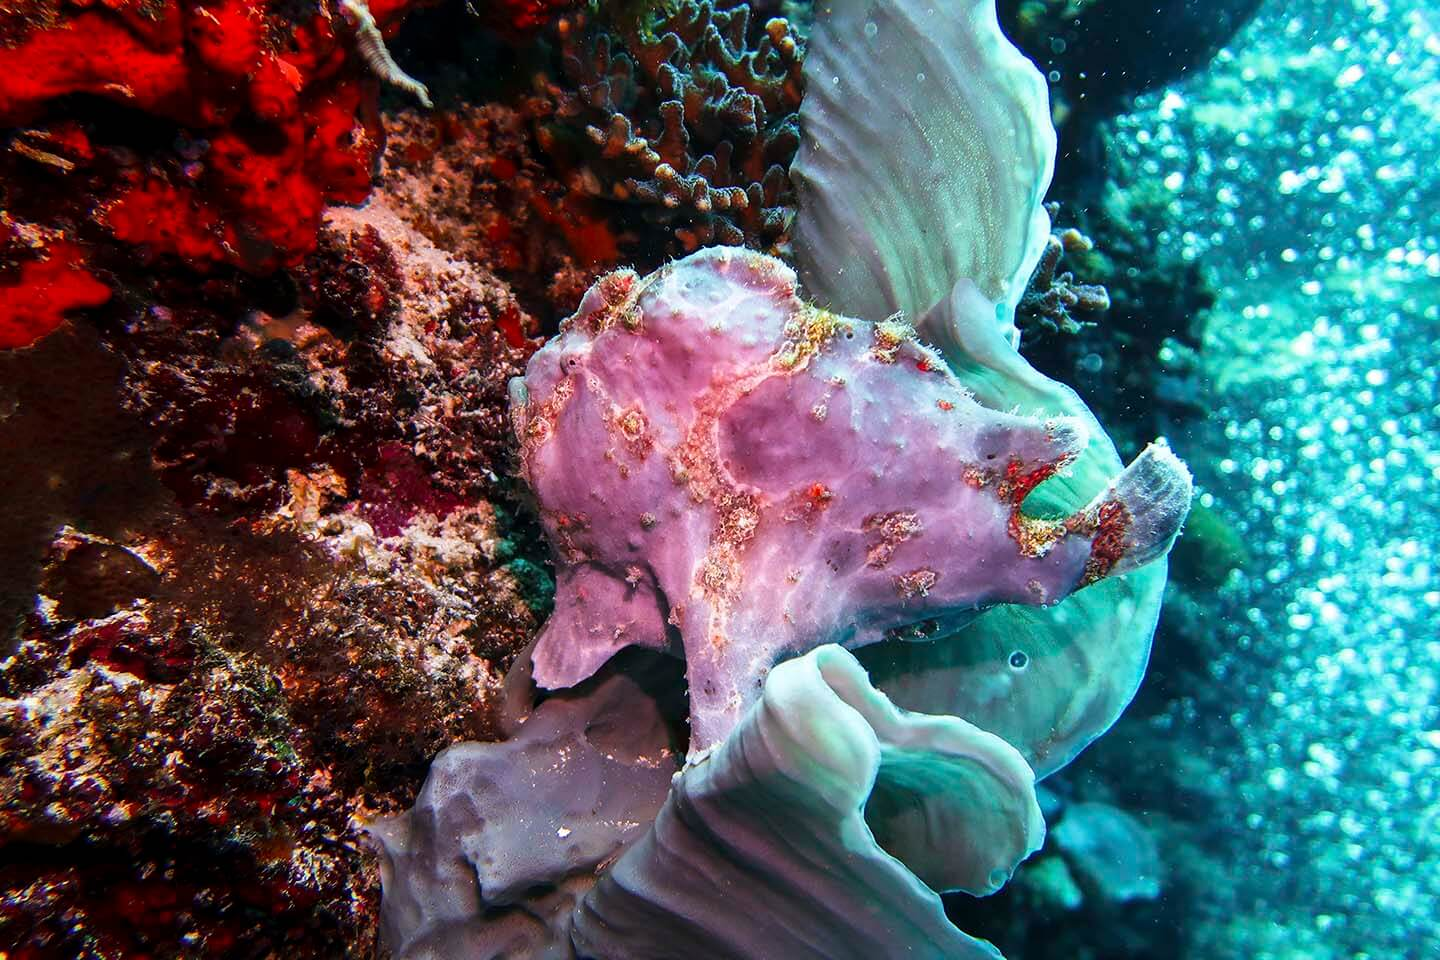 Another giant frogfish (Antennarius commersoni) hiding between elephant ear sponge in Balicasag, Bohol Philippines